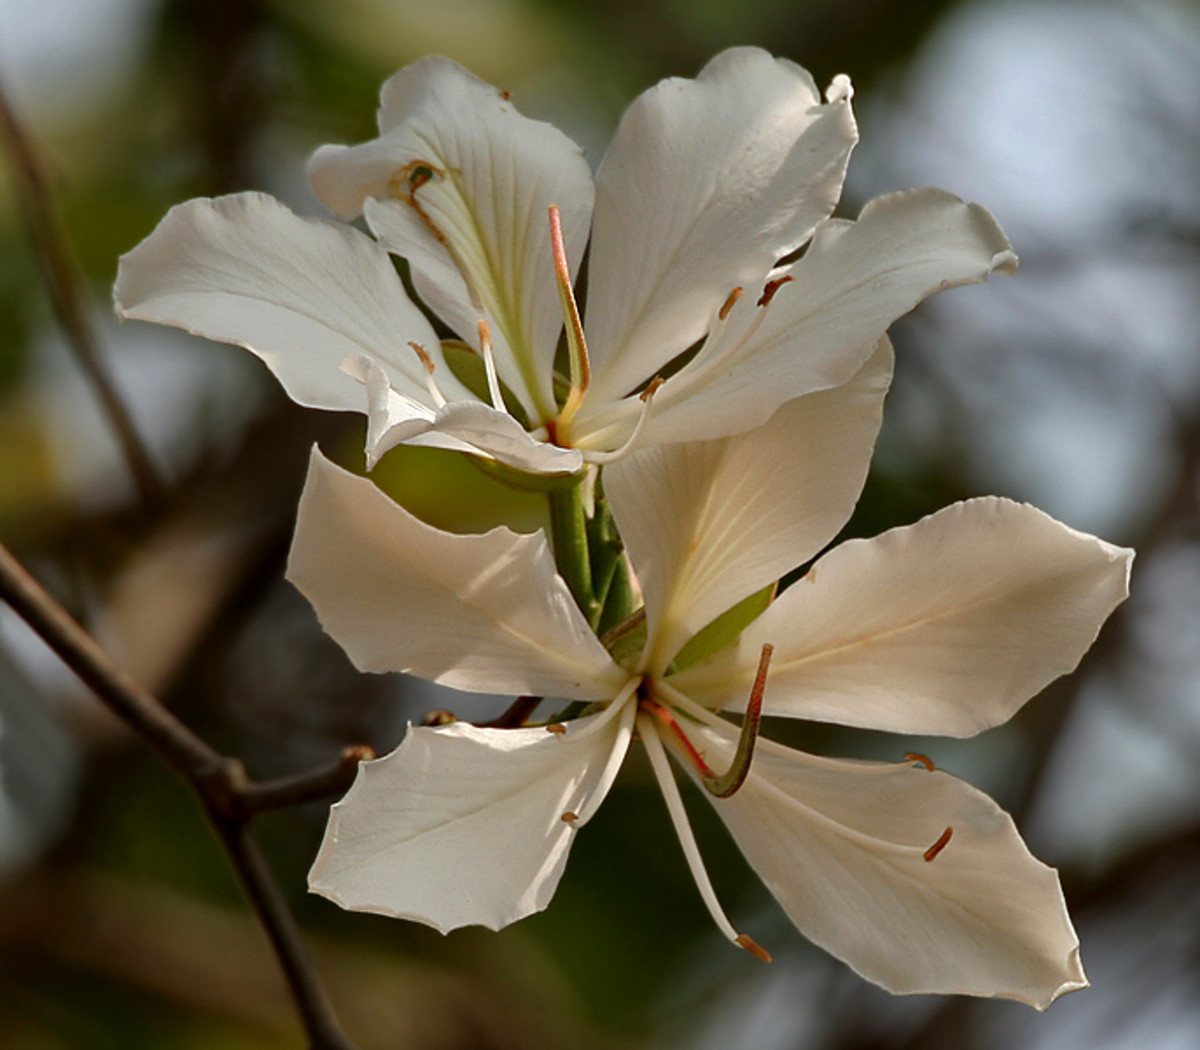 The white flowered variety of kachnar